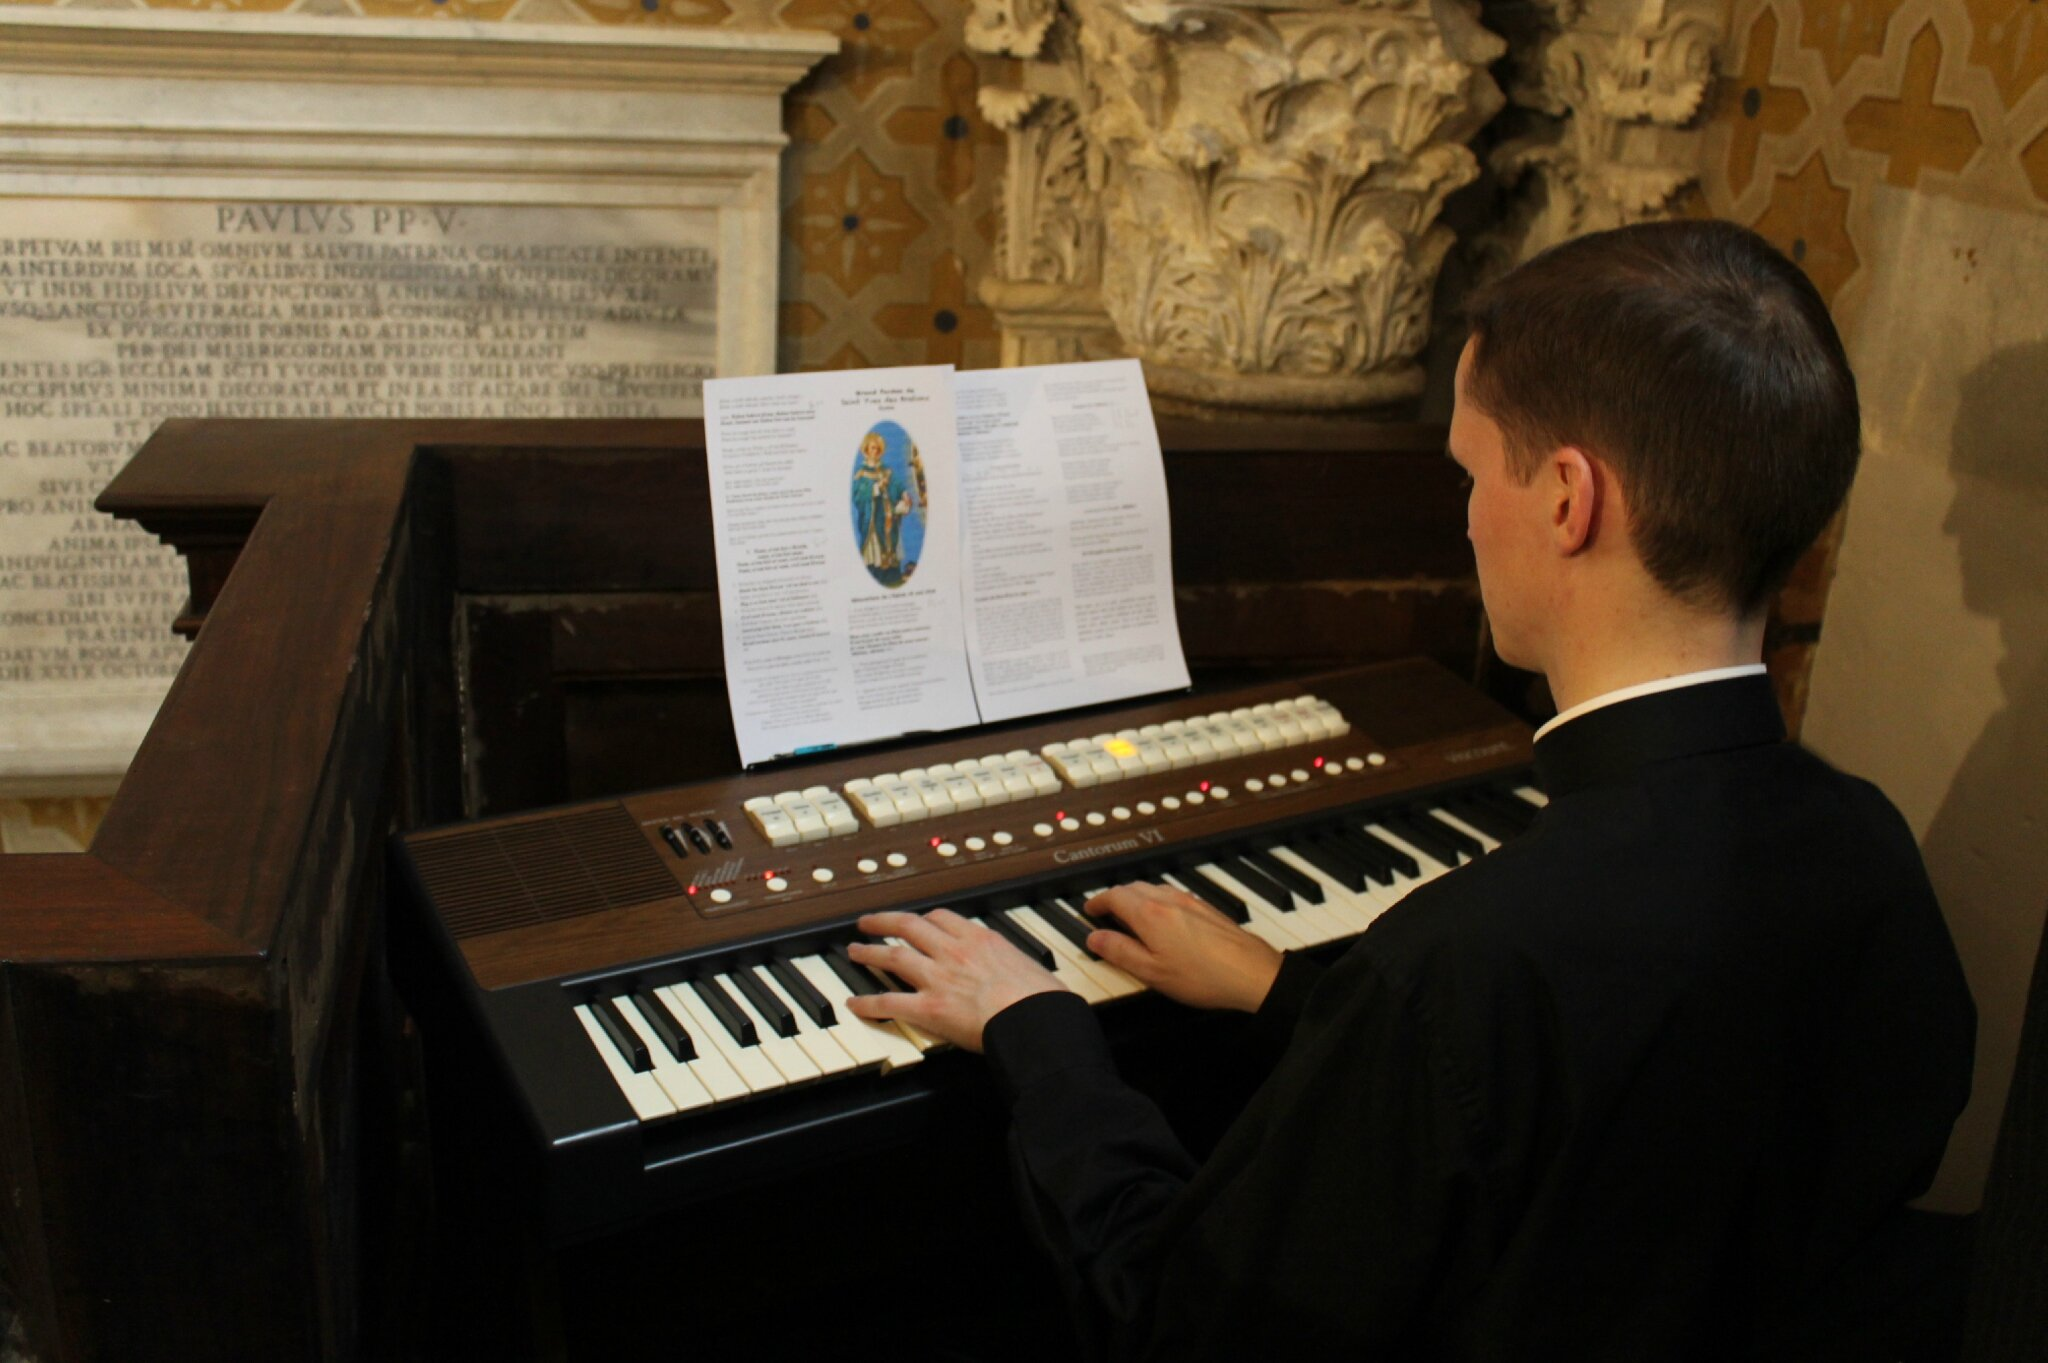 Orgue à la tribune